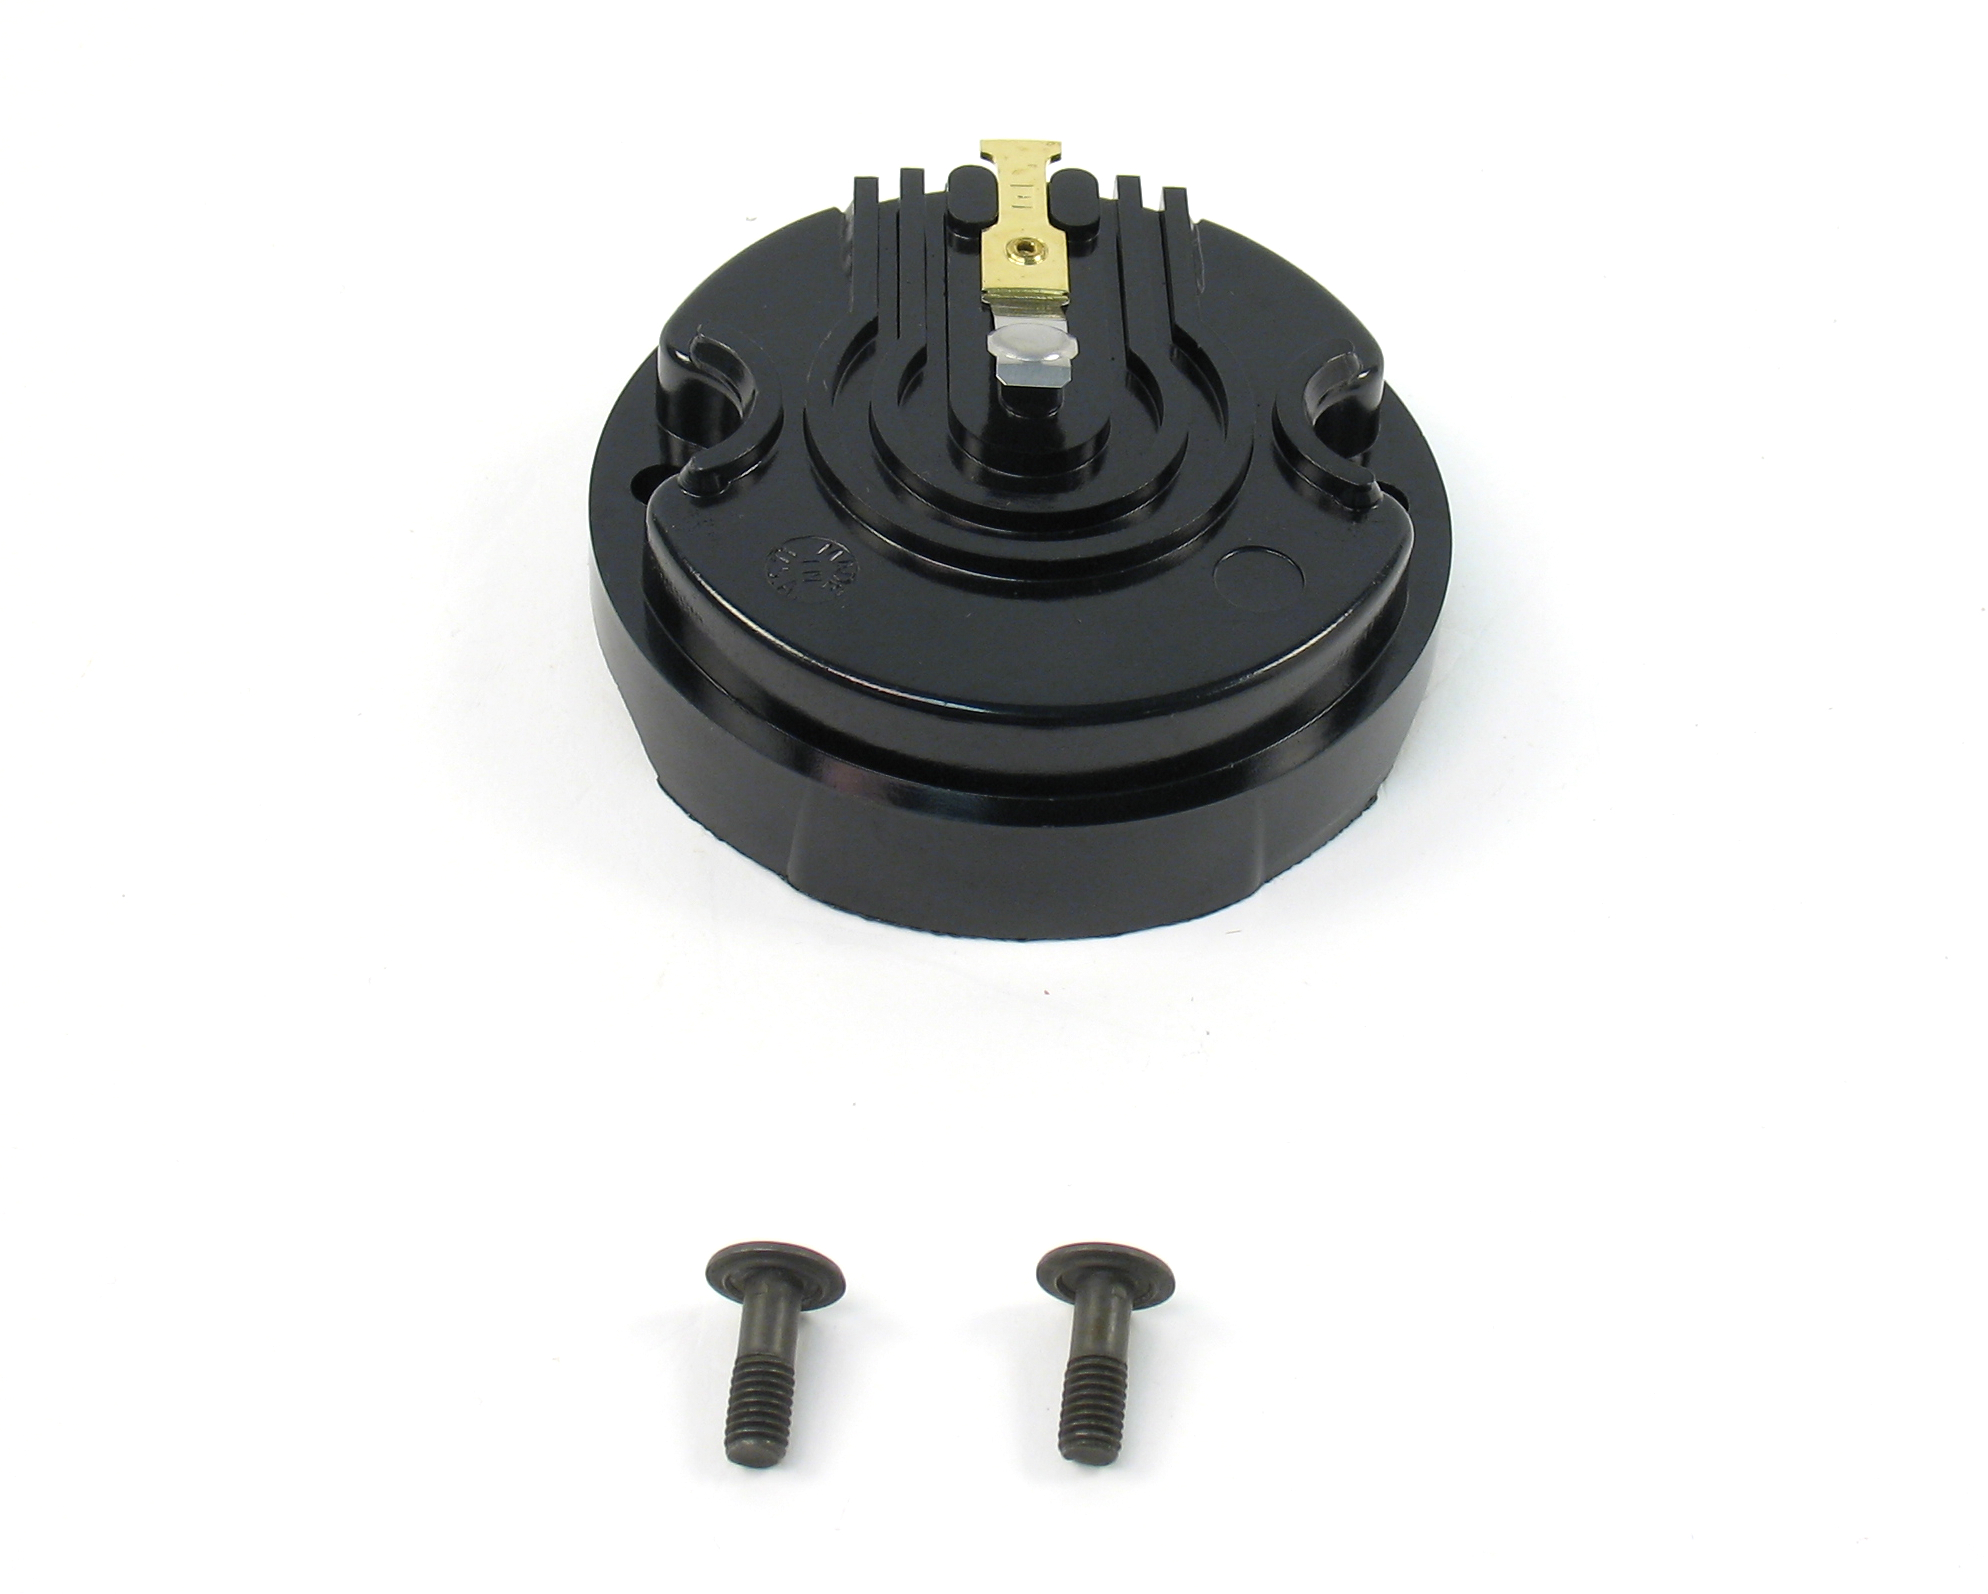 D660701 Pertronix Distributor Rotor For Use With Pertronix